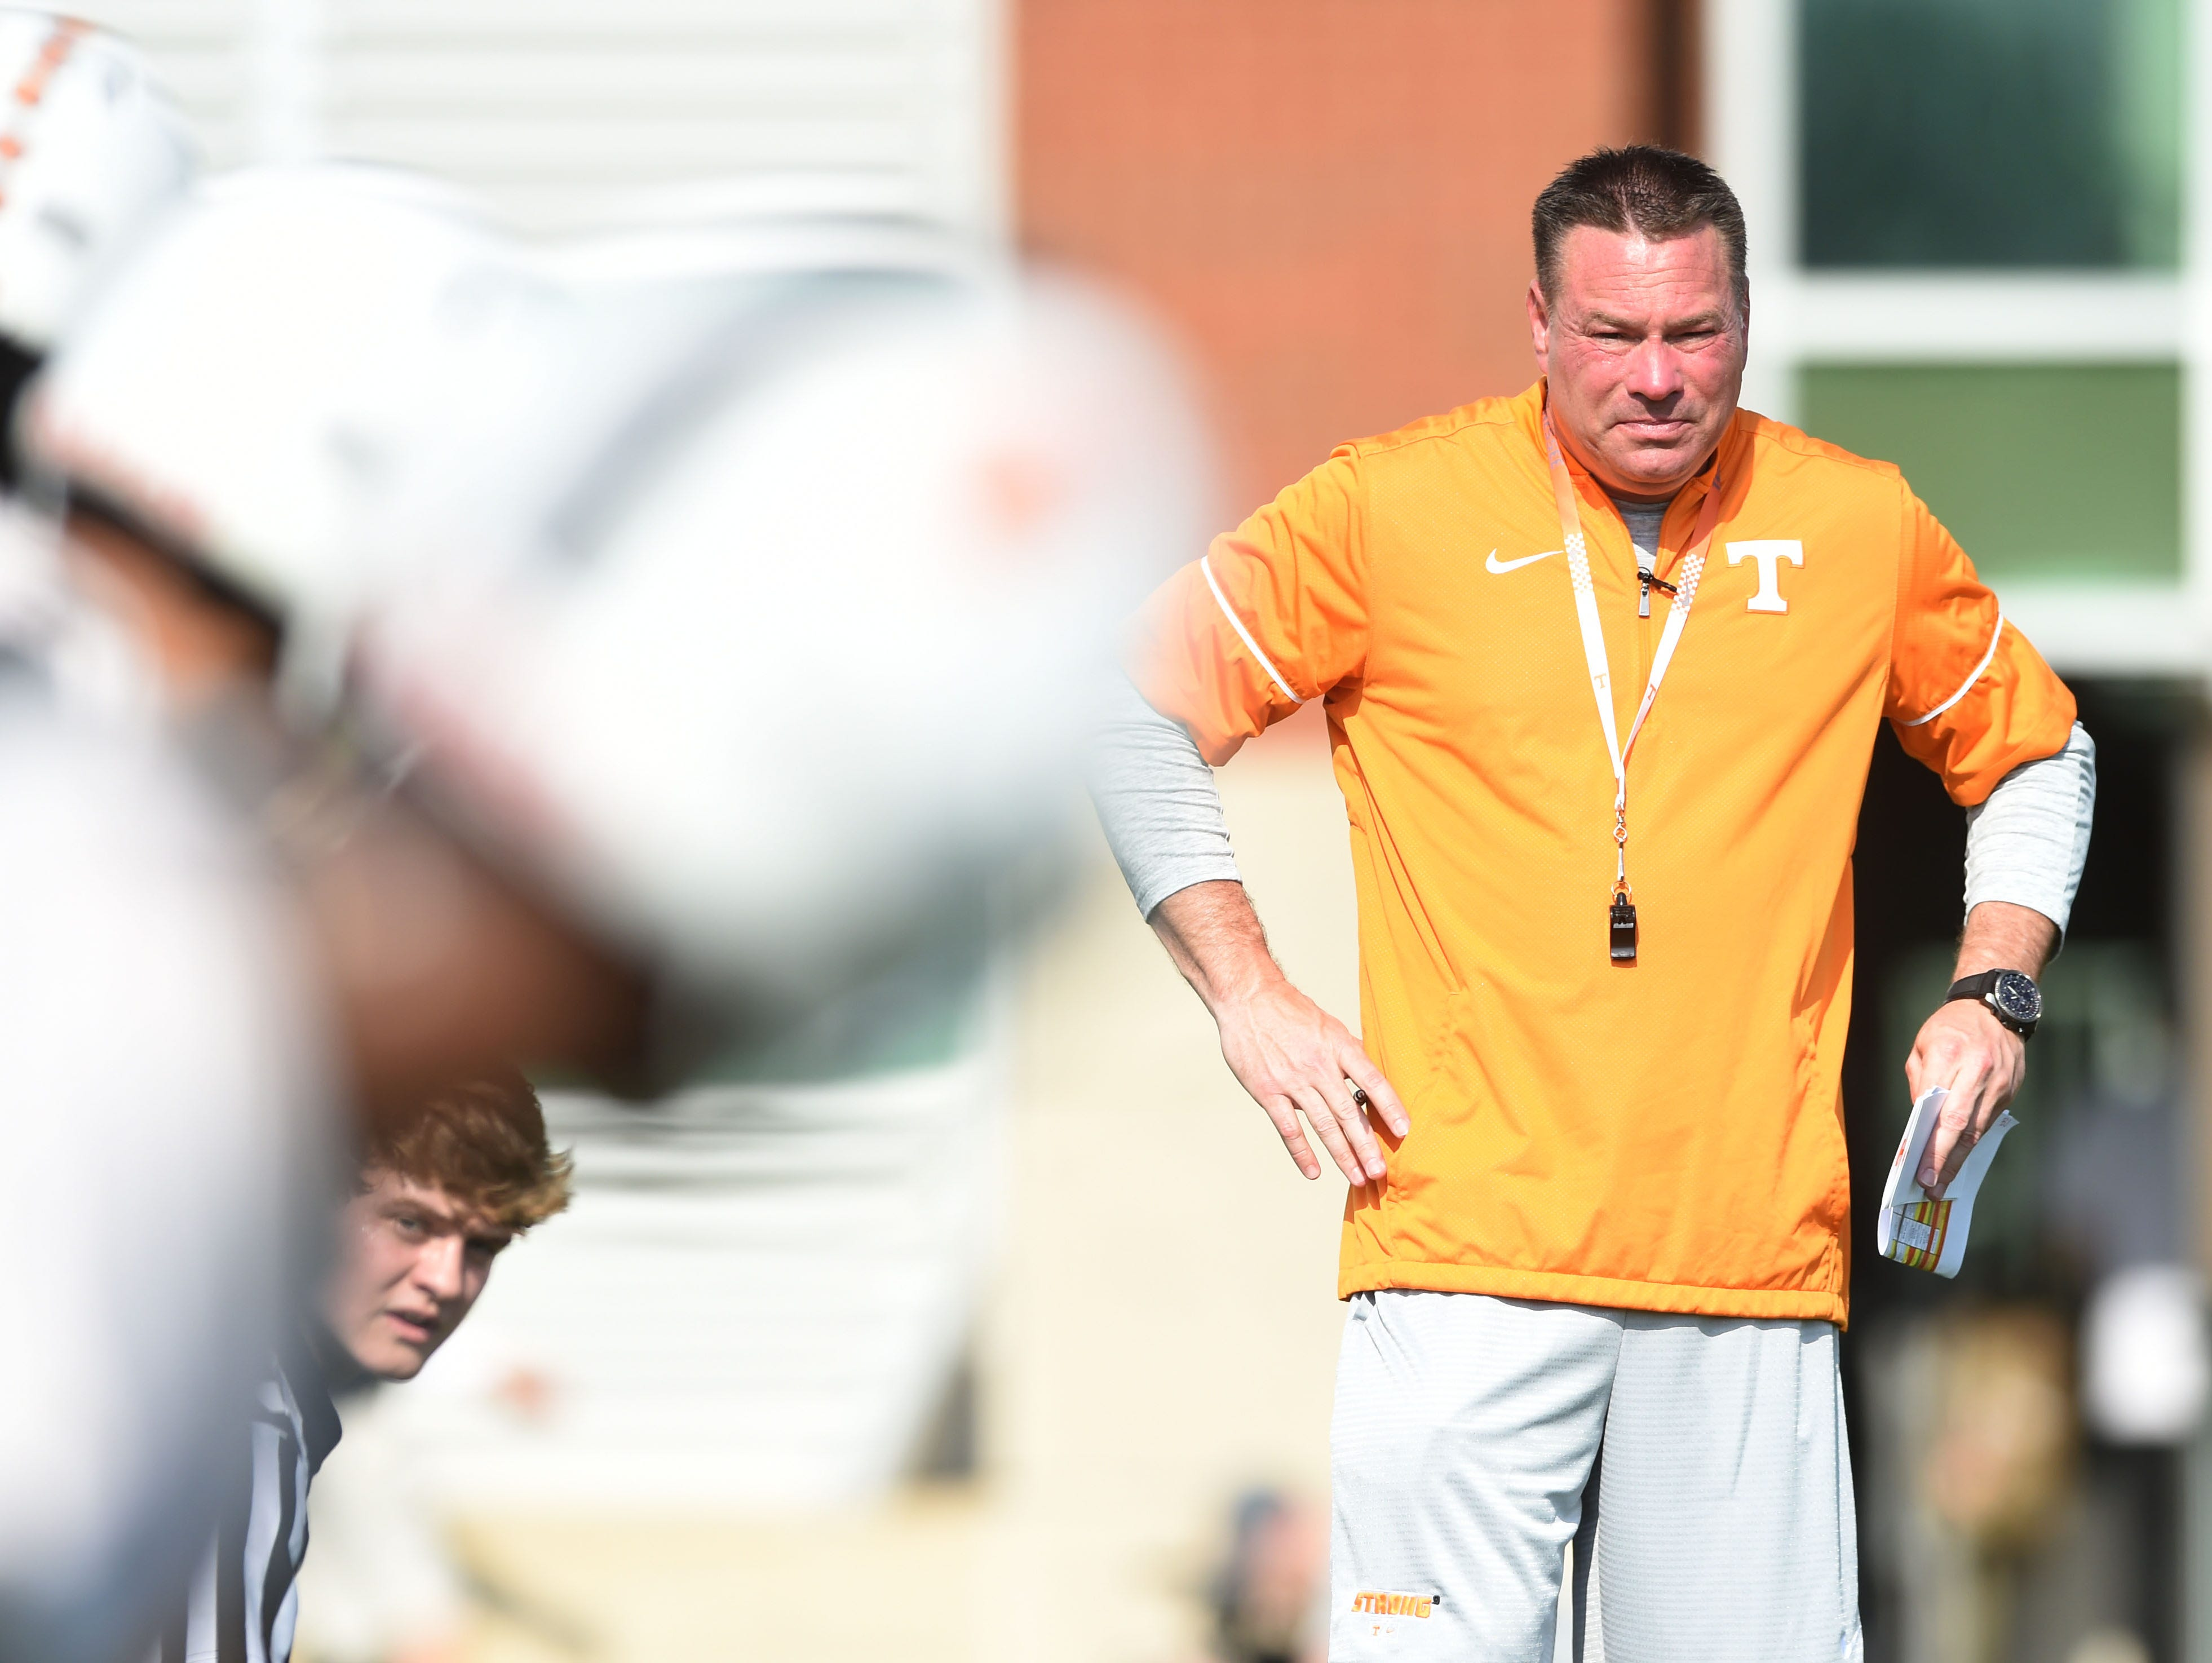 Tennessee football coach Butch Jones watches practice on Tuesday.